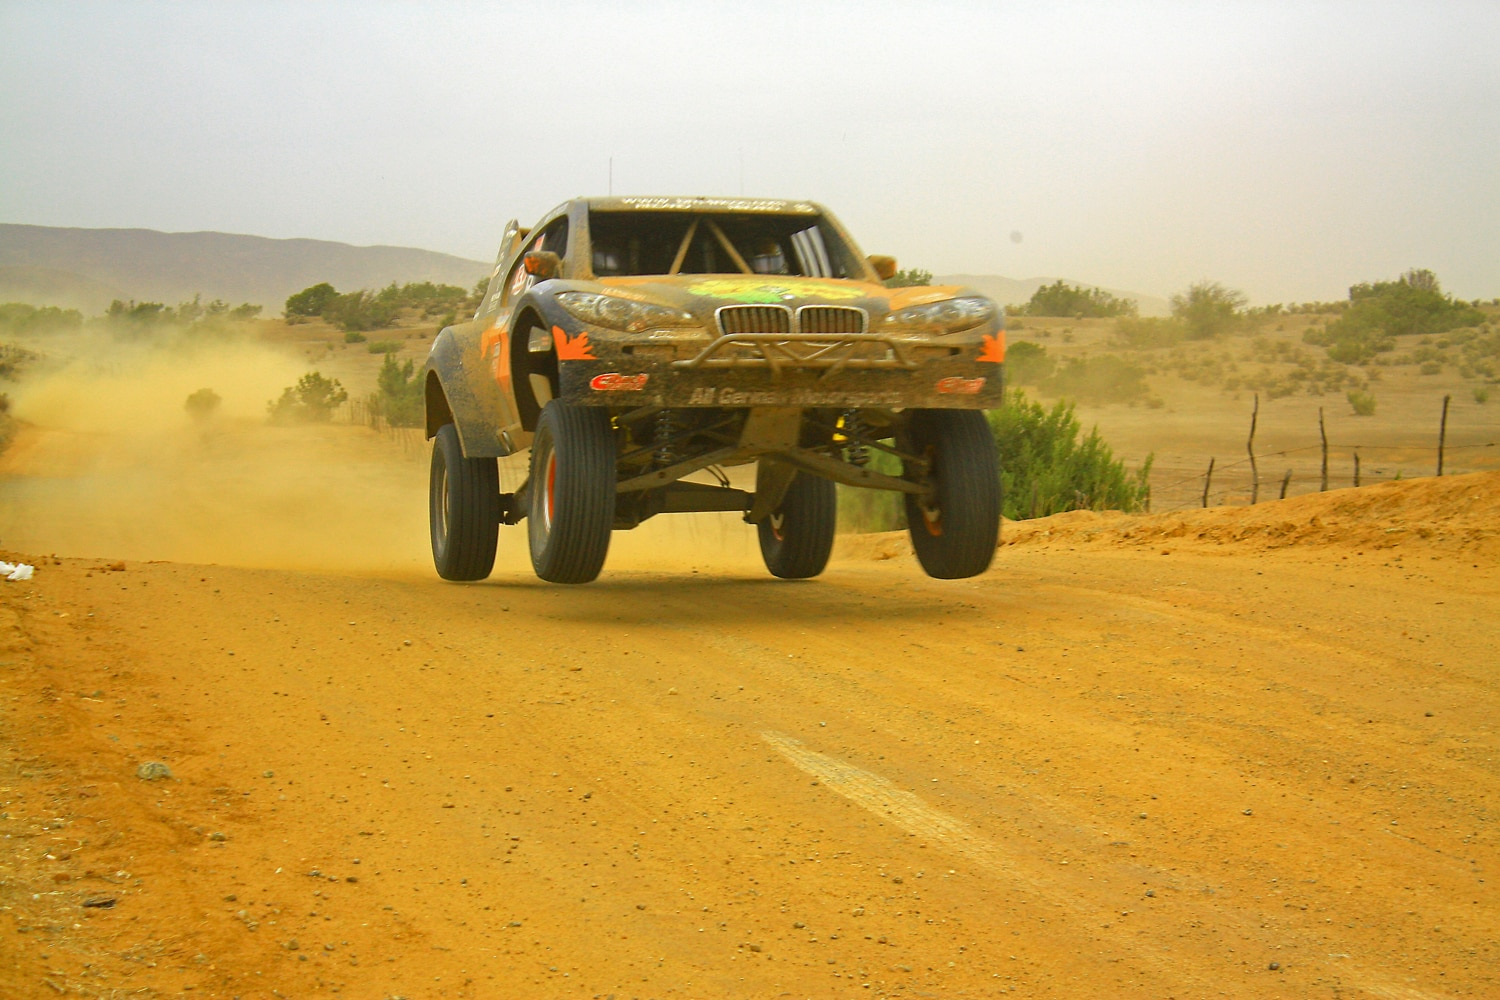 All German Motorsports BMW X6 Trophy Truck Armin Schwarz 2012 Baja 1000